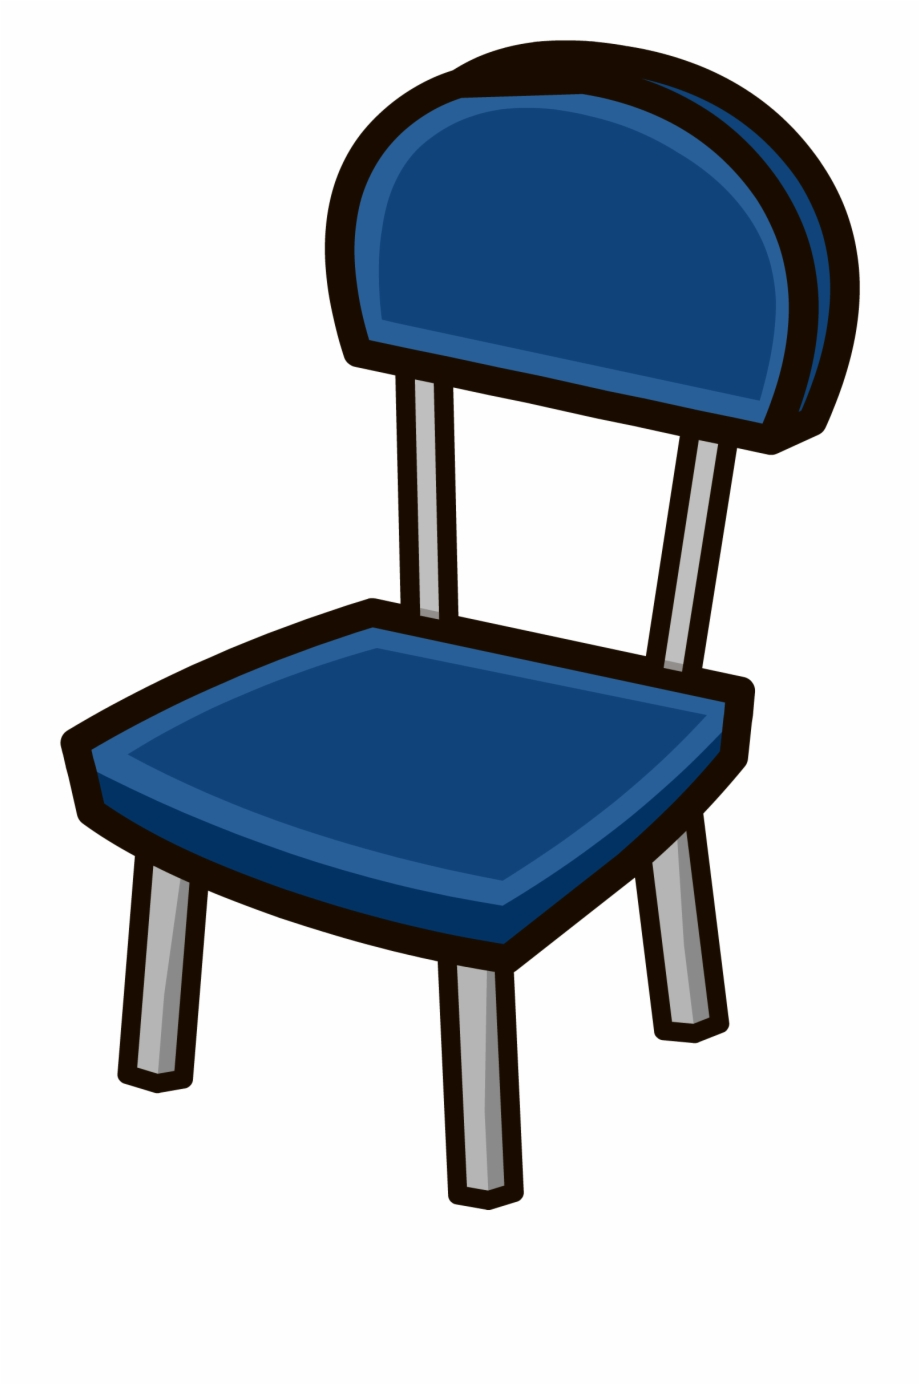 Chair clipart photo clipart transparent stock Chair Clipart Blue Chair - Blue Chair Clip Art Free PNG Images ... clipart transparent stock